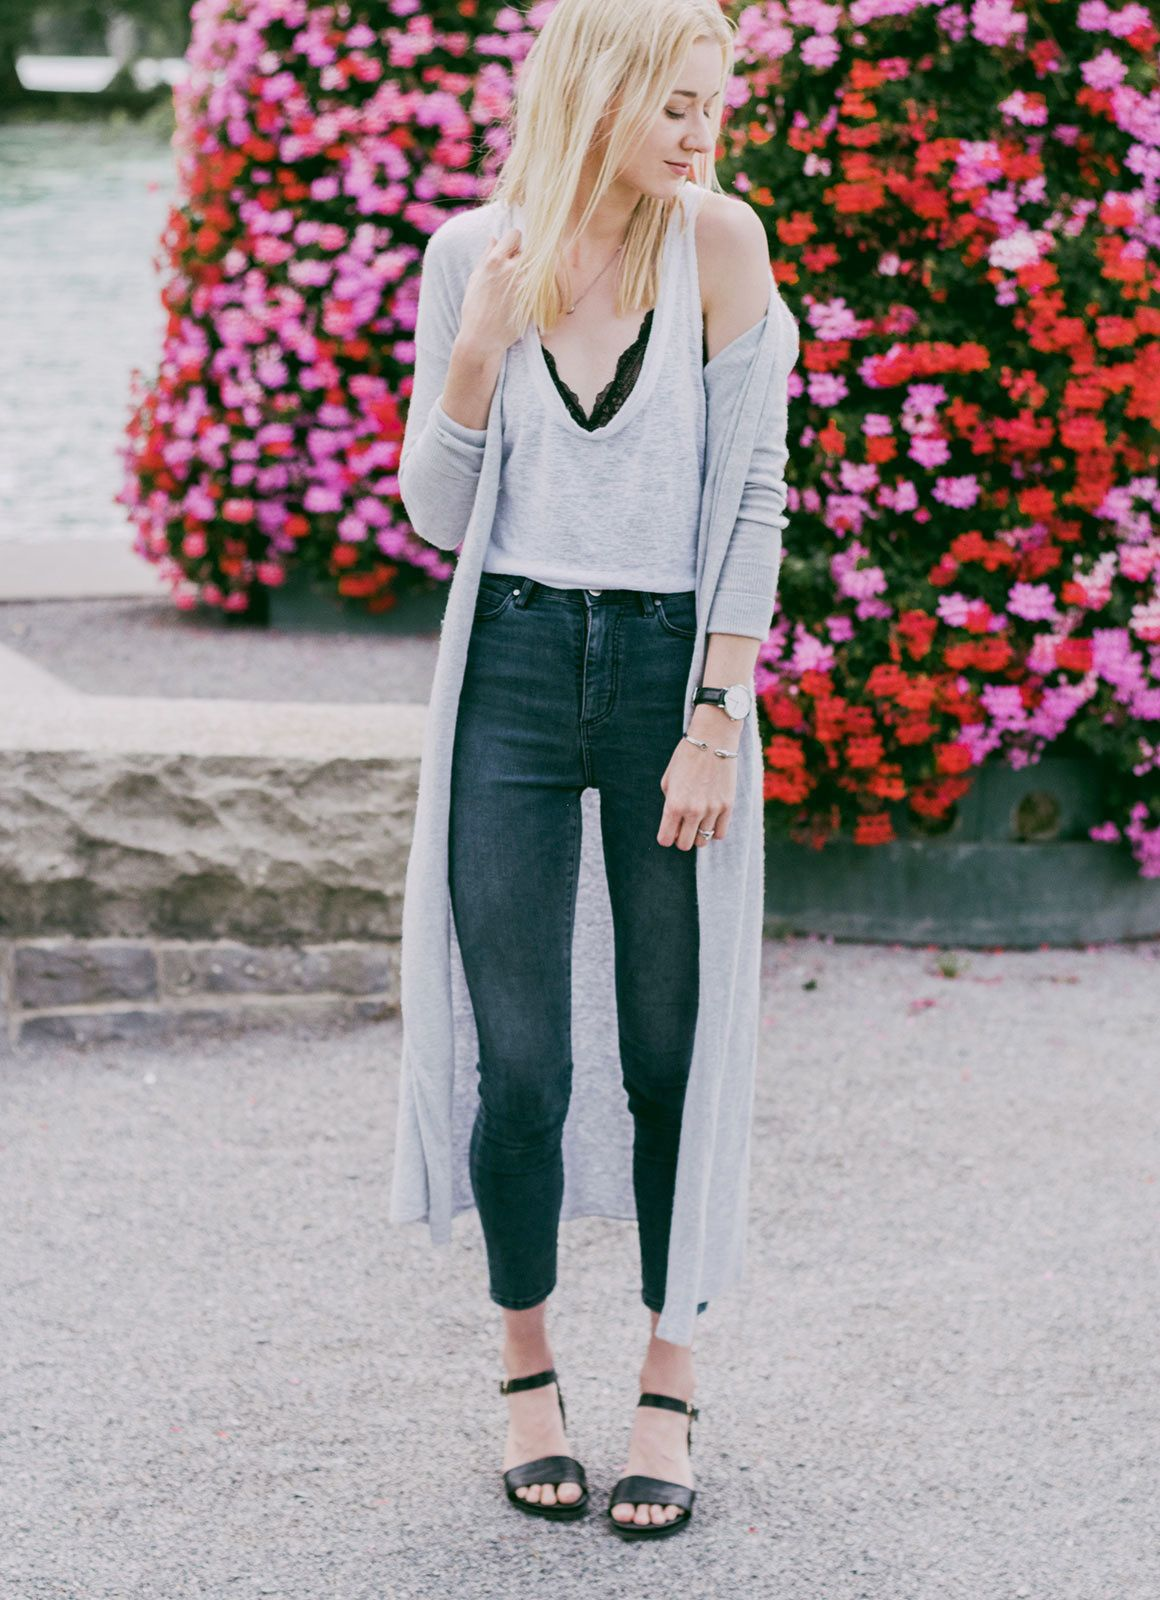 Sweet Details: How to wear the Lace Bralette | Lace ...